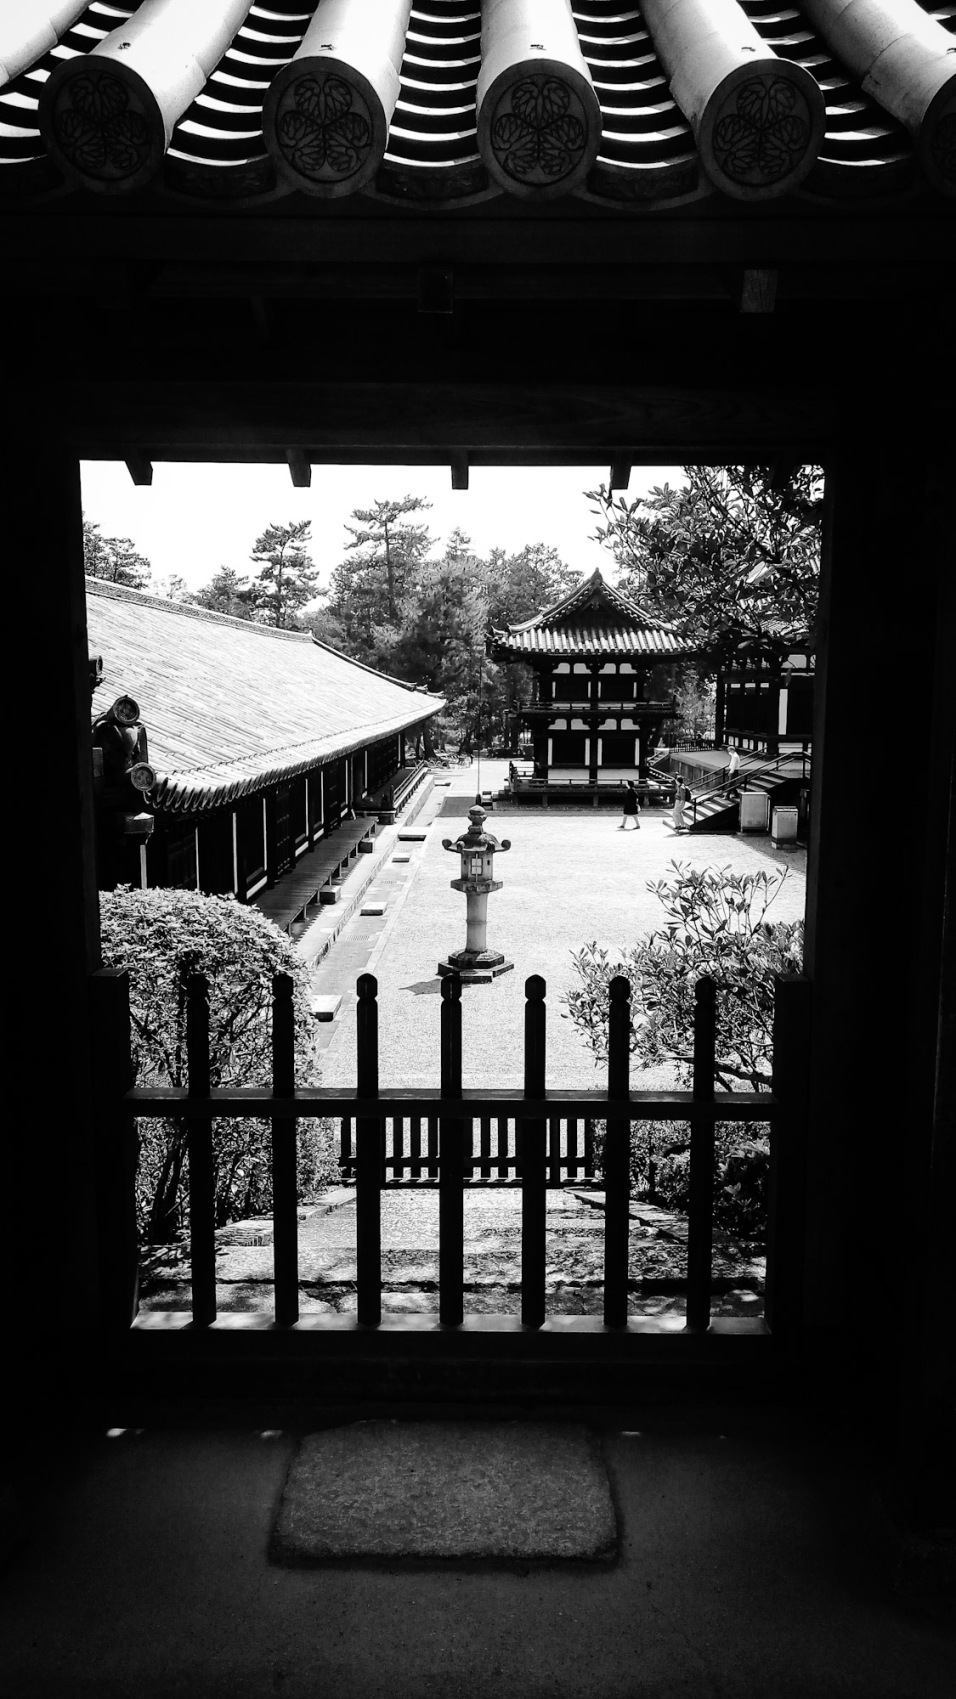 Urban photos – Gojocho, Nara, Japan. 'Toshodaiji Temple.' Complete image from my latest travel art blog article 'Sakura Japan.' Now online - sketchbookexplorer.com @davidasutton @sketchbookexplorer Facebook.com/davidanthonysutton #photography #japan #nara #buddhism #meditation #samurai #travel #travelblog #cherryblossom #cherryblossomseason #cherryblossomjapan